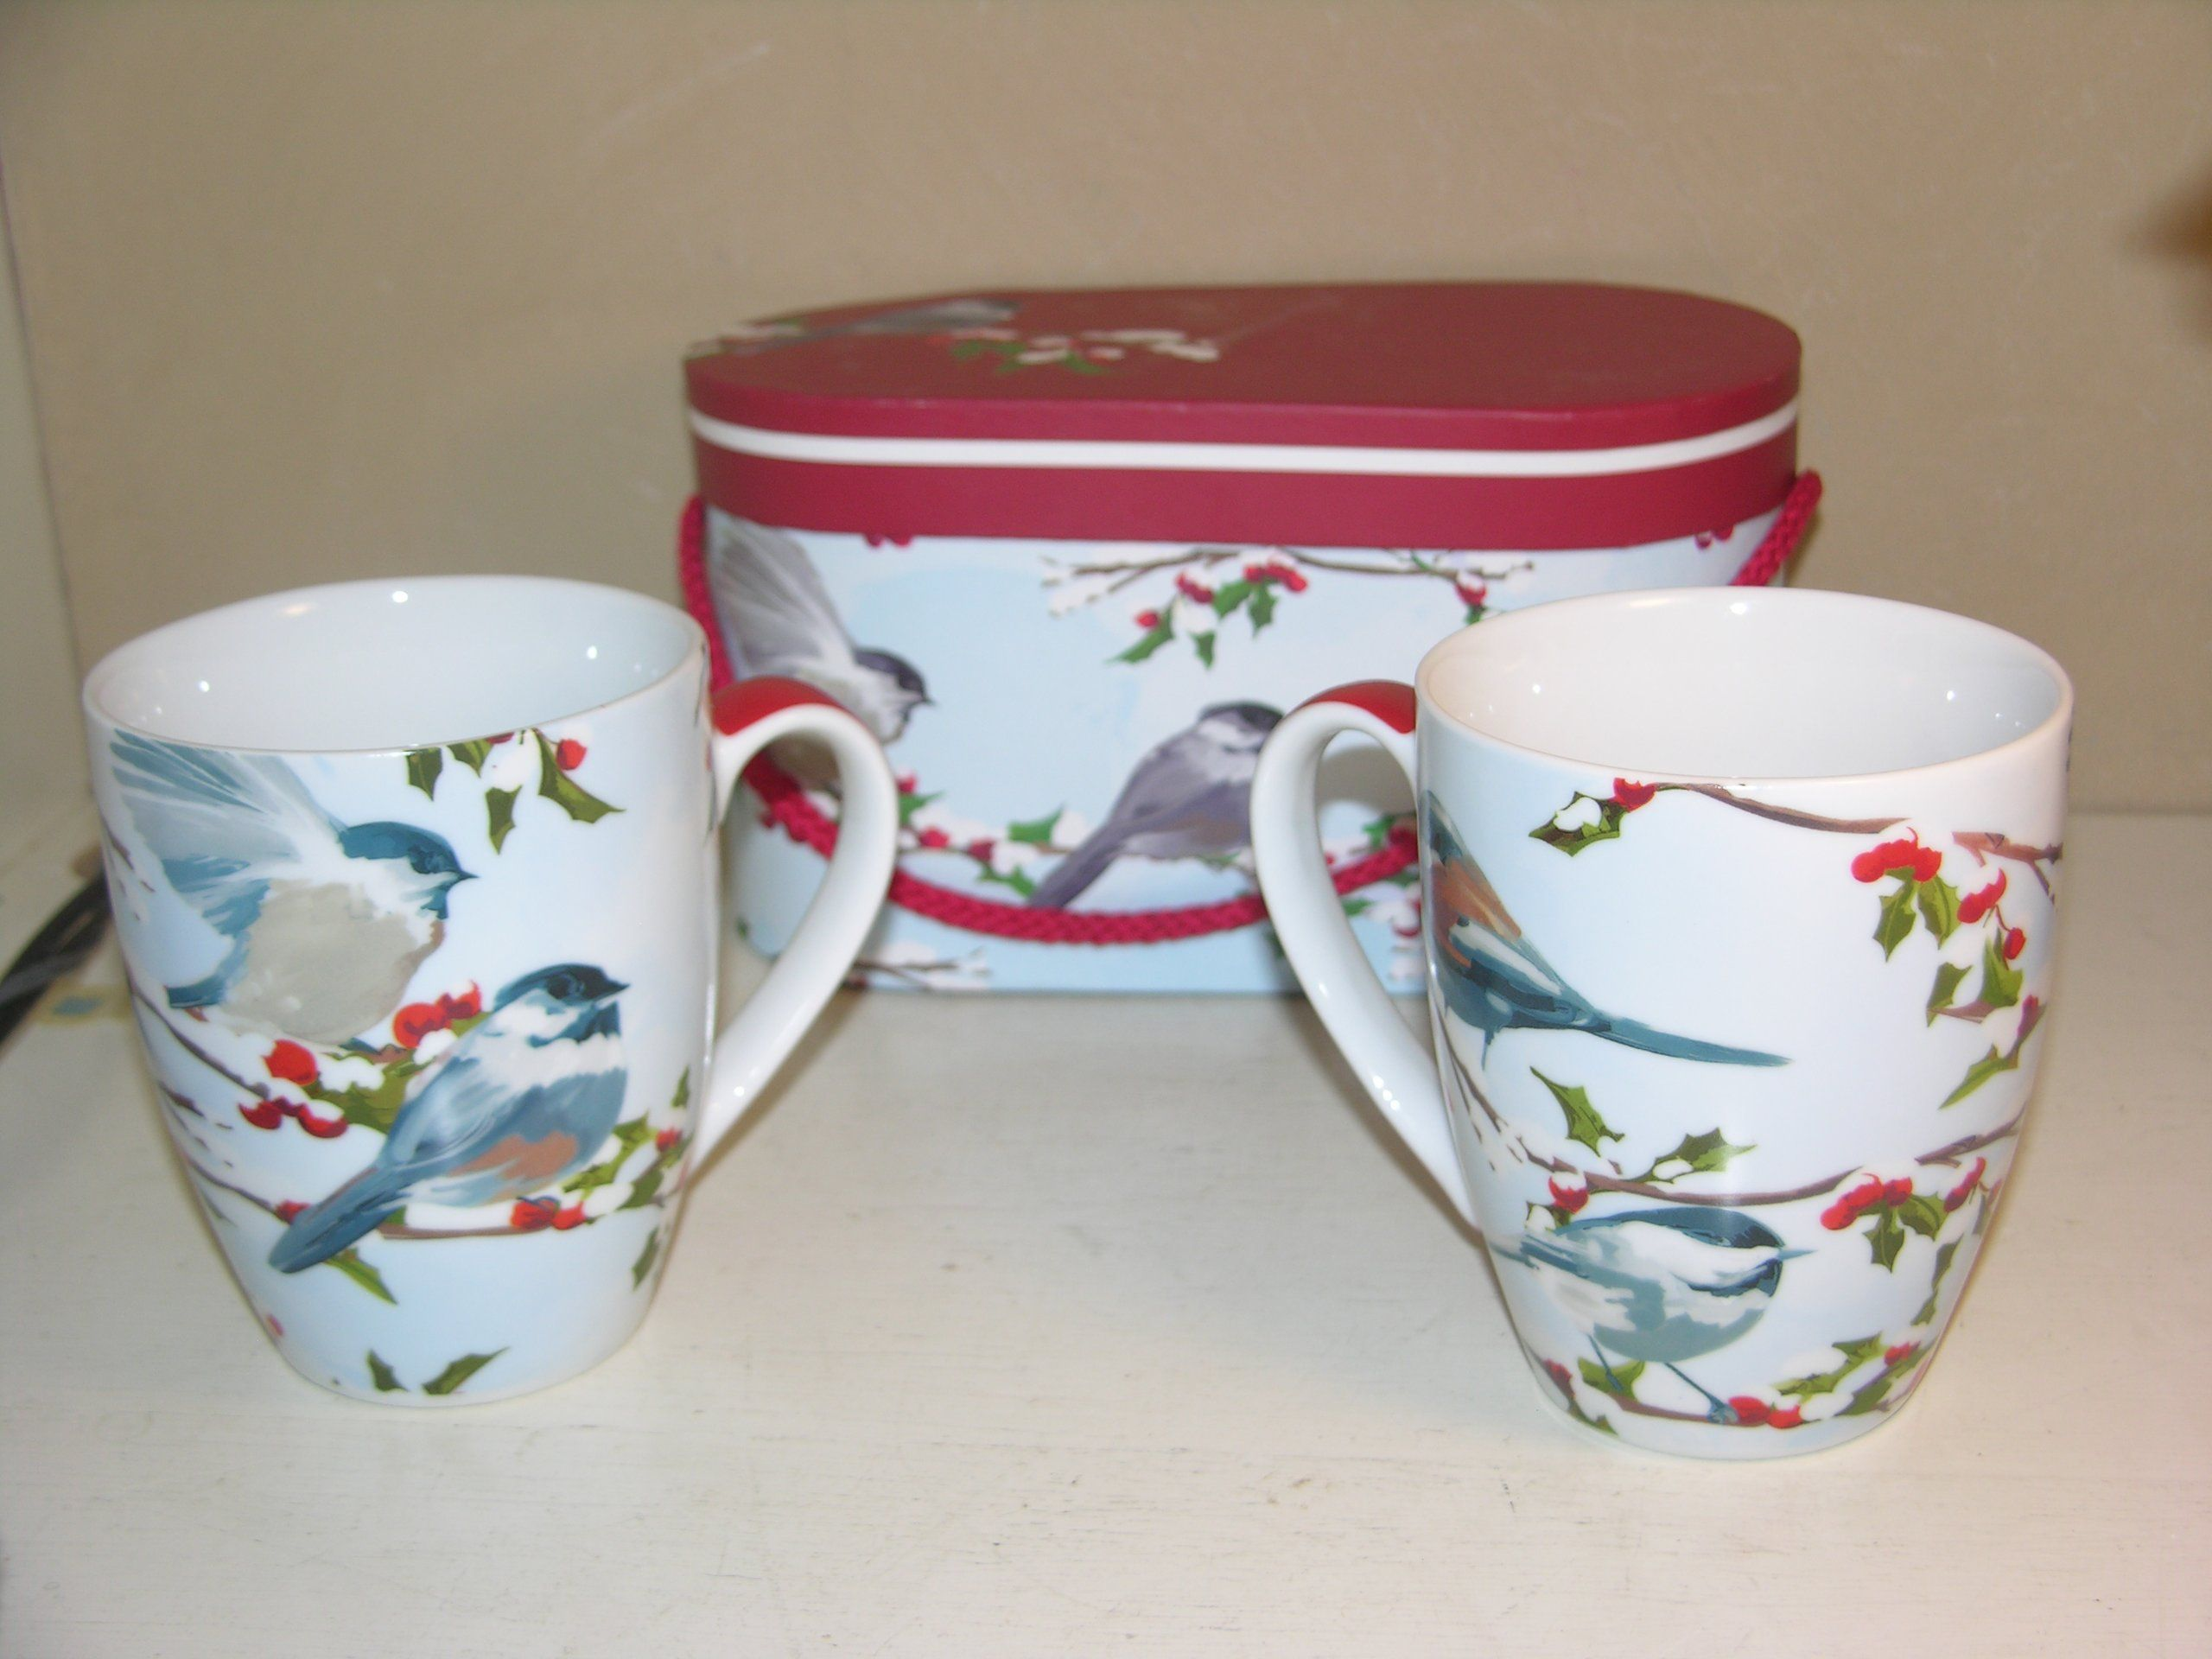 Winter Chickadee Holiday Boxed Gift Set of Two Porcelain Mugs.  Brighten your morning table with these lovely Chickadee mugs or make someone else smile when given as a Christmas gift.